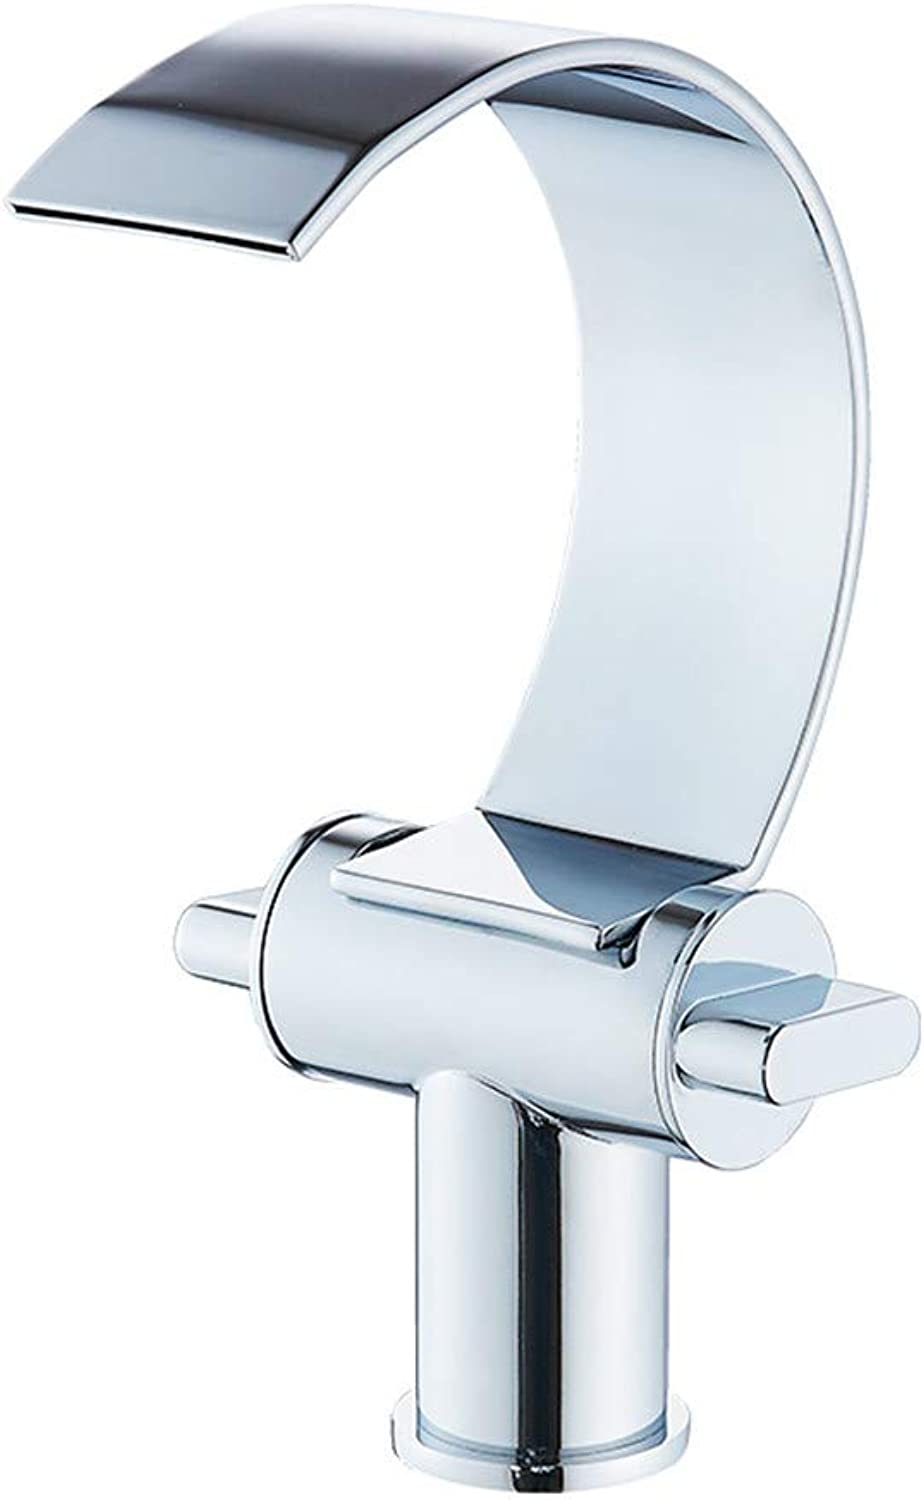 SDRKE faucet hot and cold single hole basin bathroom wash basin faucet heightening bathroom cabinet washbasin faucet